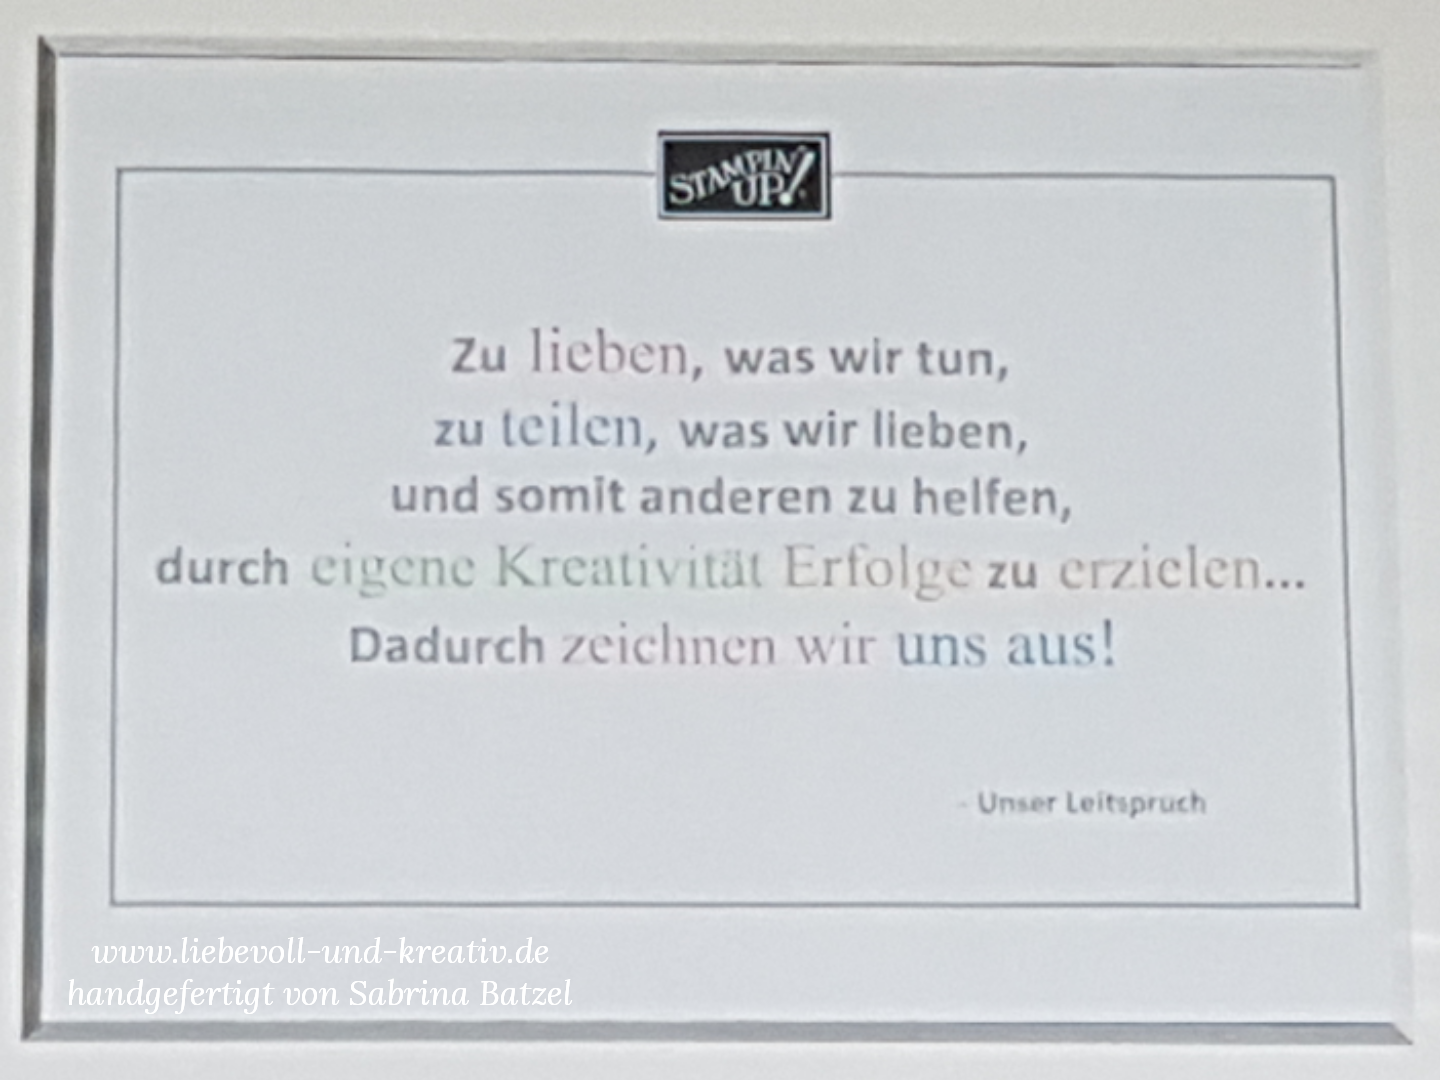 Stampin'Up! Leitspruch